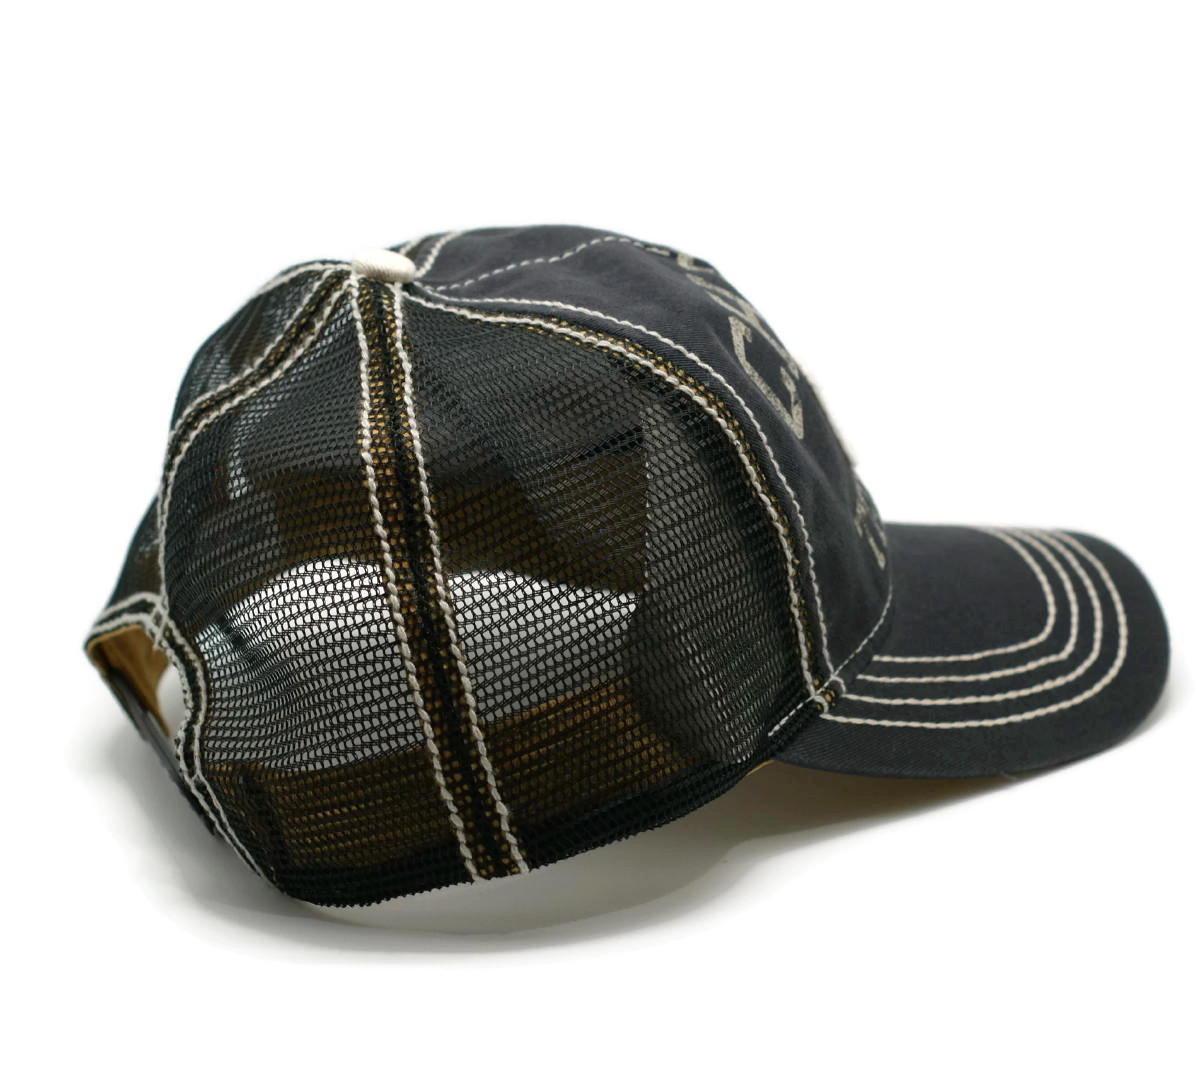 6694cd397 Hat - Chevy Truck Division Mesh Vented Ball Cap Charcoal & Black FREE  SHIPPING